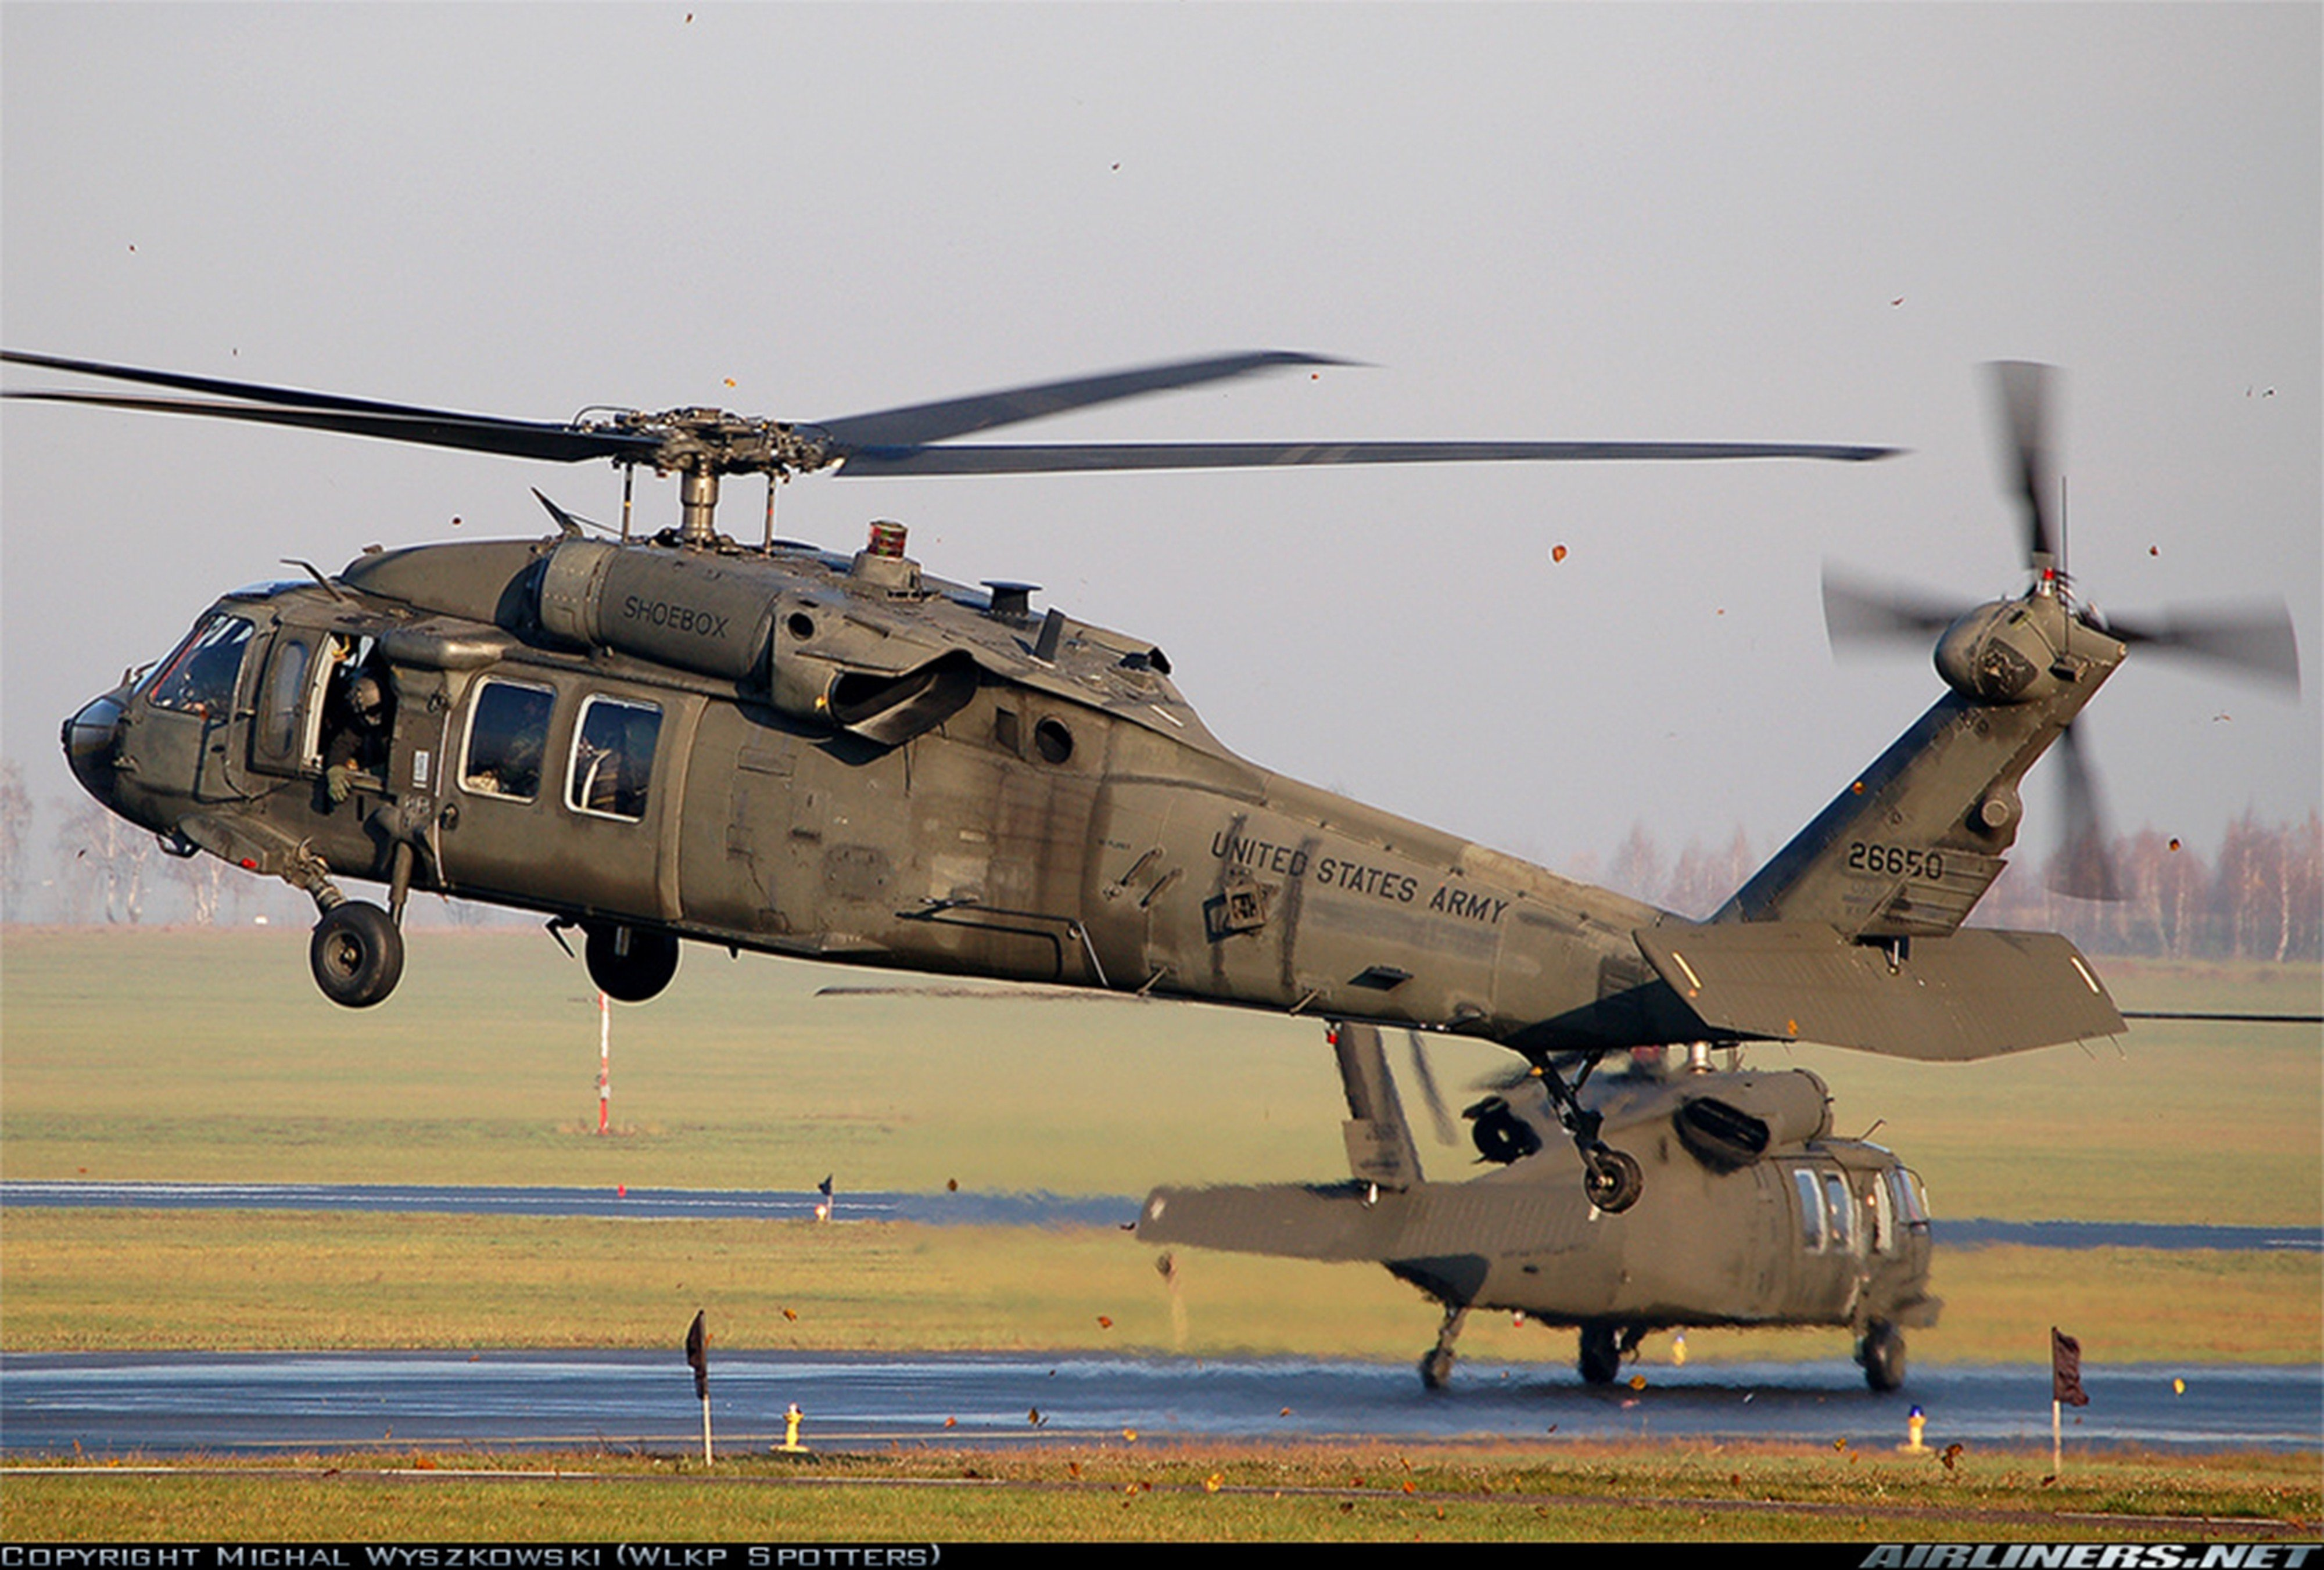 military helicopters with Helicopter Aircraft Vehicle Military Army Black Hawk on Sukhoi su 26 lausanne 1 together with Dh 110 sea vixen airpower zeltweg together with Photo gallery helis as well Douglas dc 3 klm airpower09 moreover Military Helicopters.